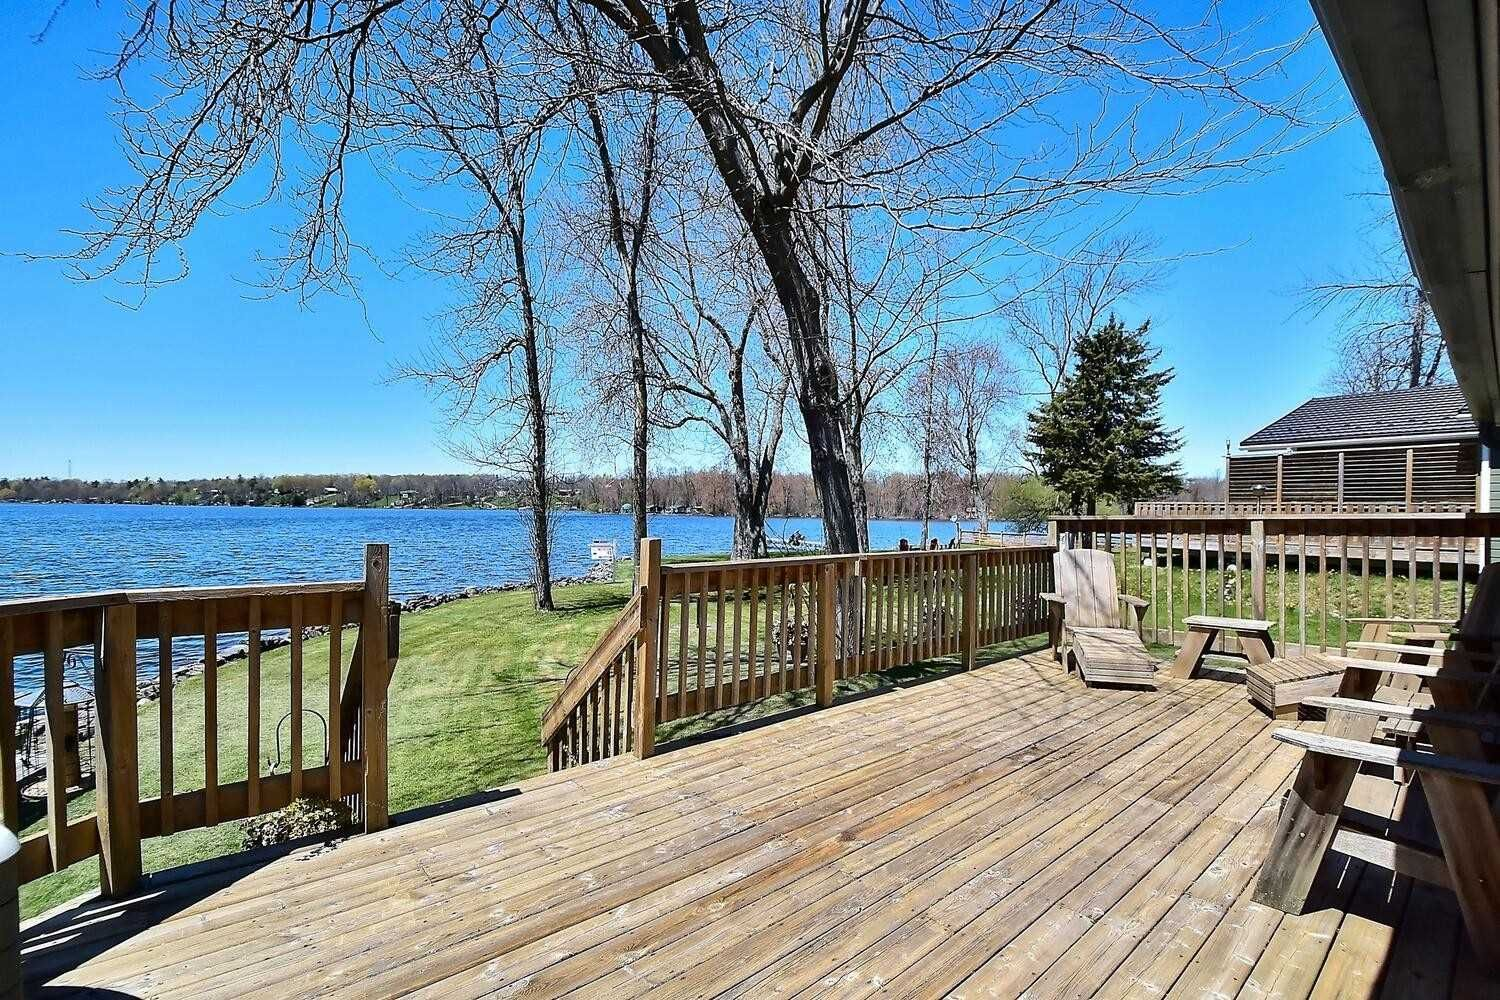 Main Photo: 78 Marine Drive in Trent Hills: Hastings House (Bungalow) for sale : MLS®# X5239434